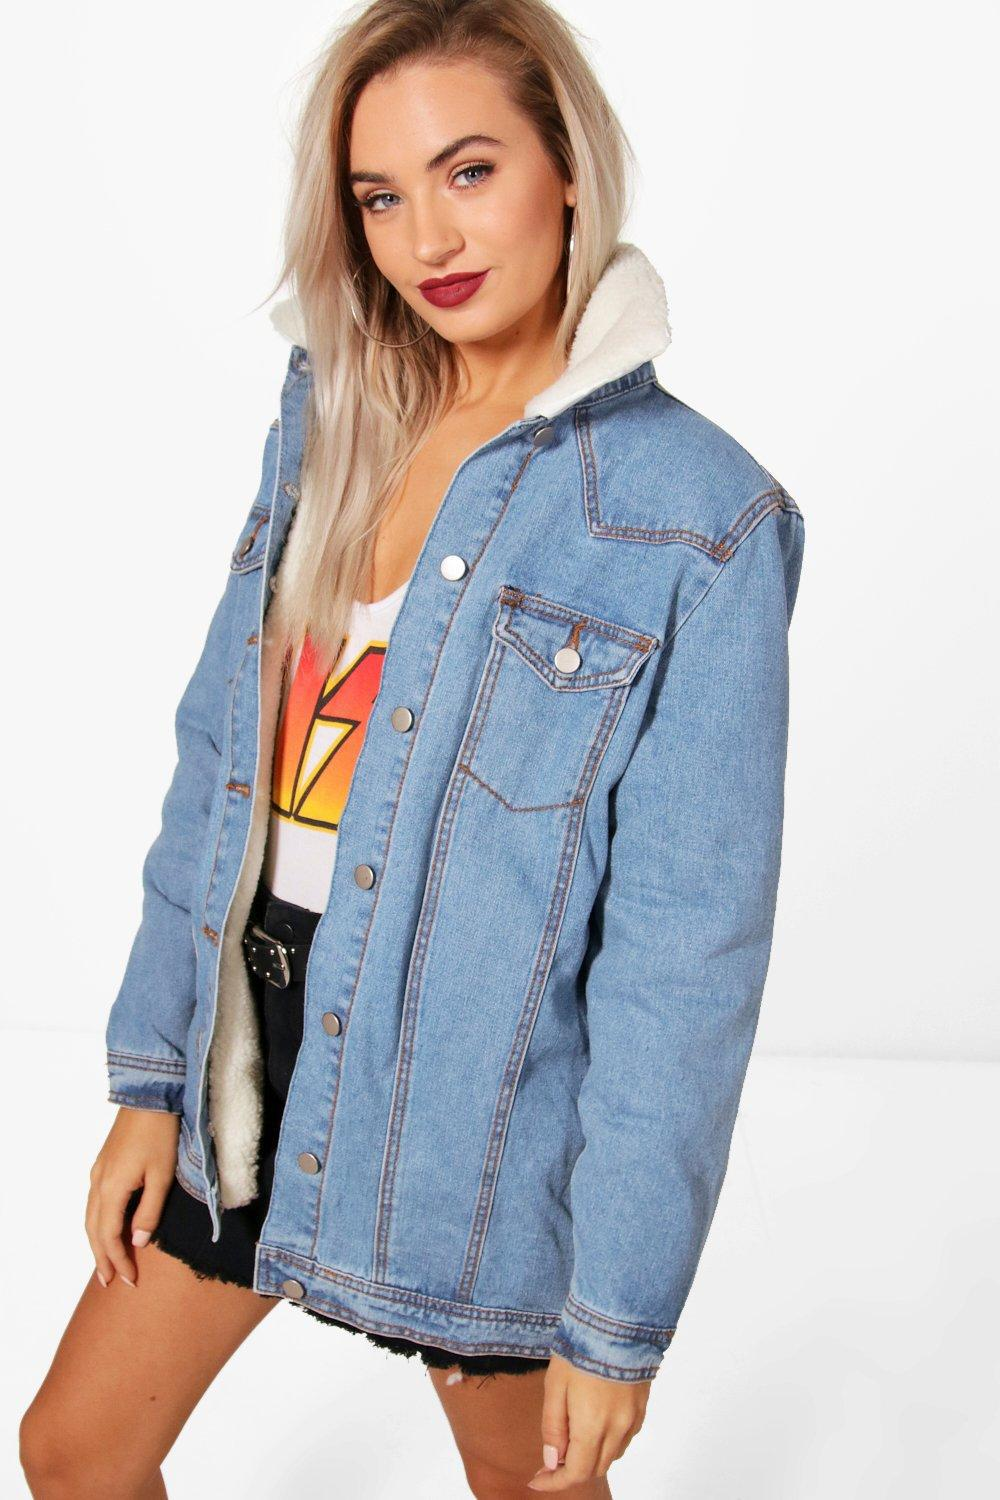 be22ce7a5c3 Boohoo Long Lined Borg Collar Denim Jacket in Blue - Lyst